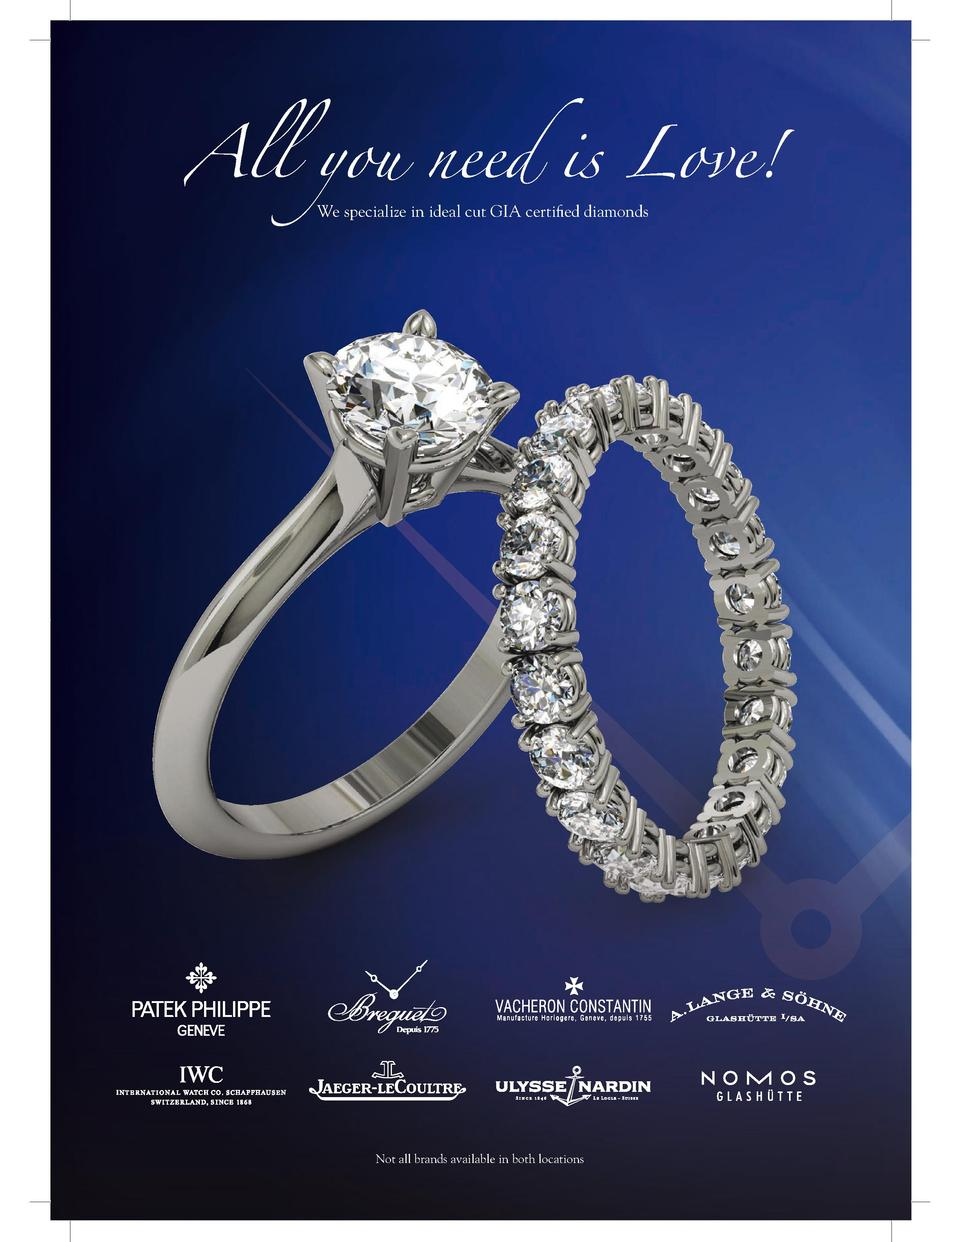 Jewels by Love 2016  All you need is Love  We specialize in ideal cut GIA certified diamonds  H  Patek onymo makin Amon ha...